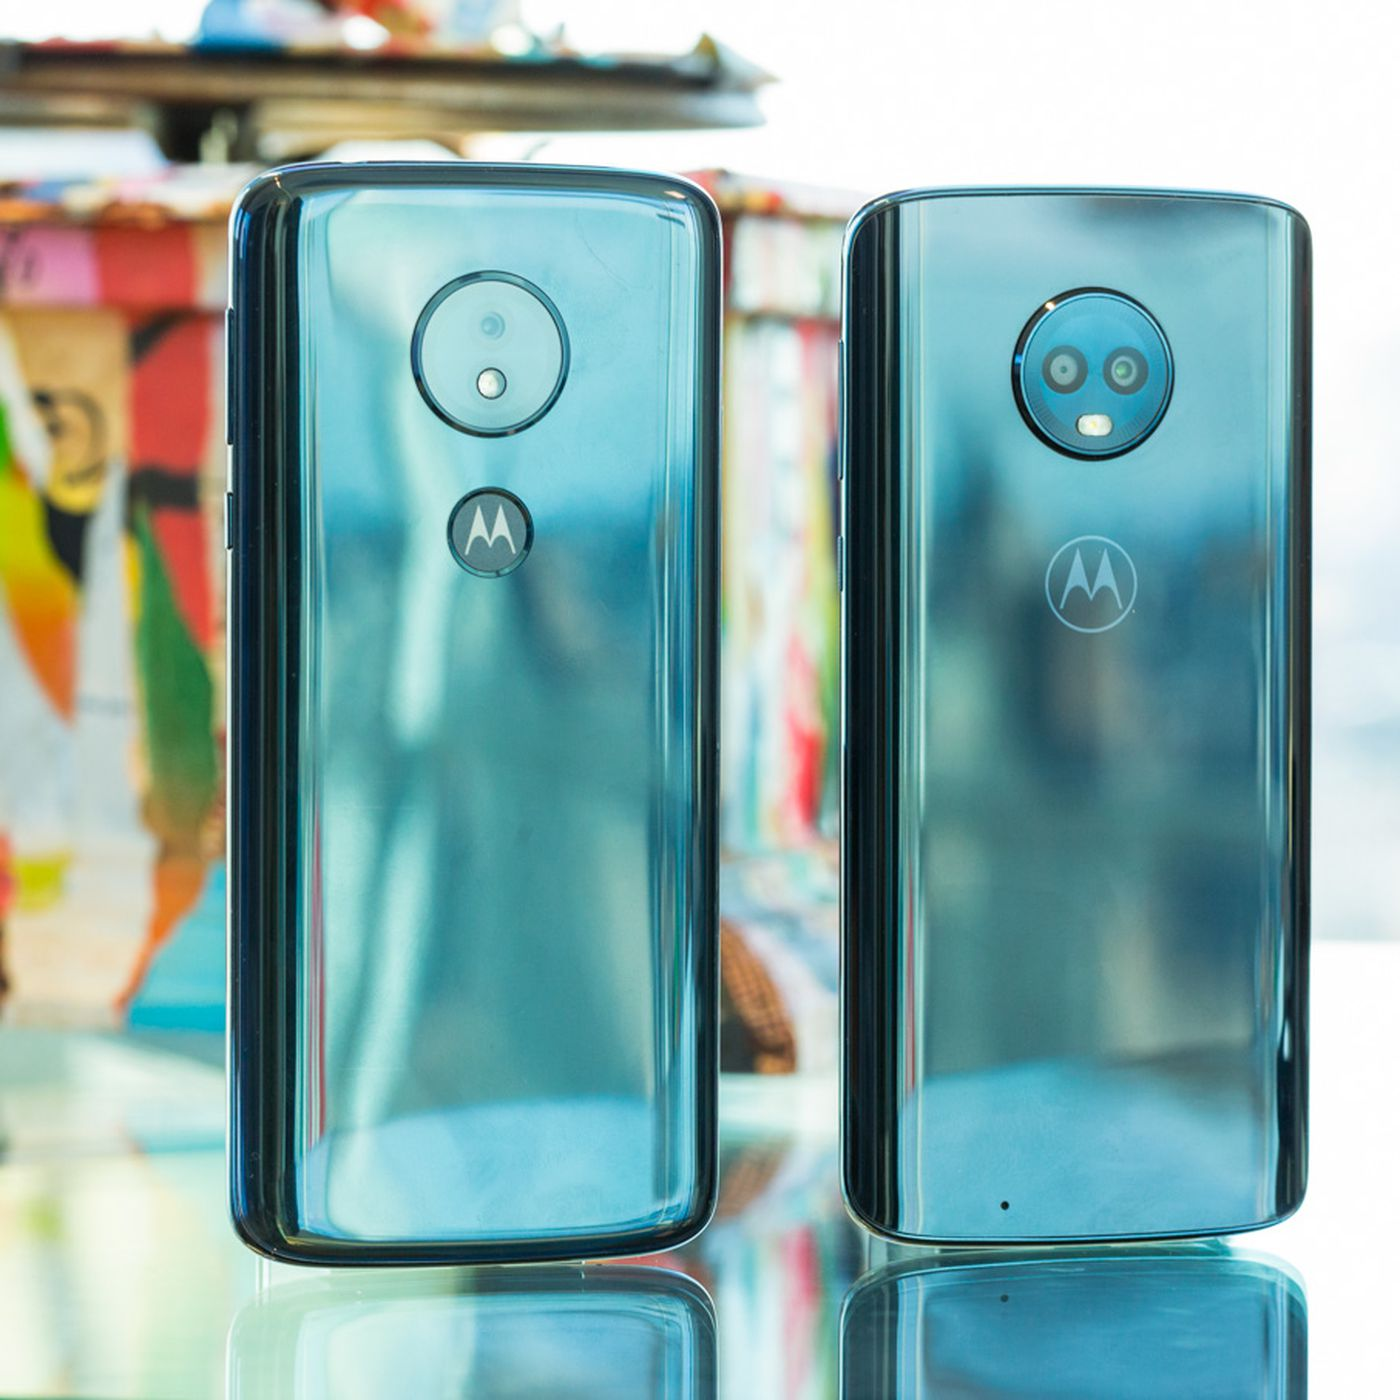 online store 77ddd 13b04 Motorola announces the Moto G6 and E5 with tall screens and big ...